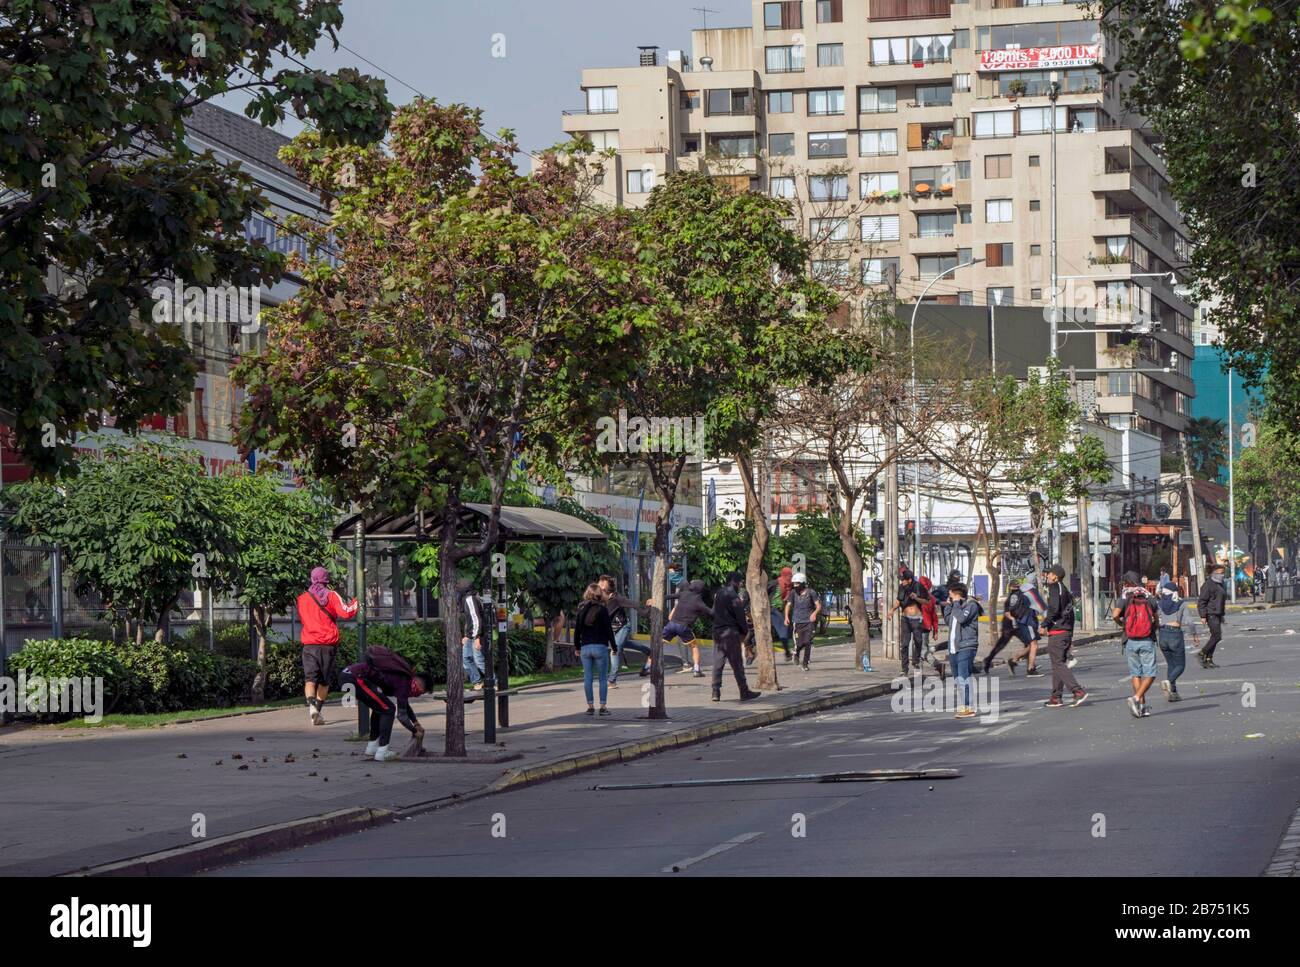 Chile, Santiago, 19.10.2019. Santiago in state of emergency on 19.10.2019. Roadblock. The violent protests had started after a fare increase of the subway in Santiago. Chile's president Sebastian Piñera then declared a state of emergency on Friday evening. After renewed arson attacks on subway stations, a curfew was imposed in the Chilean capital on Saturday. [automated translation] Stock Photo